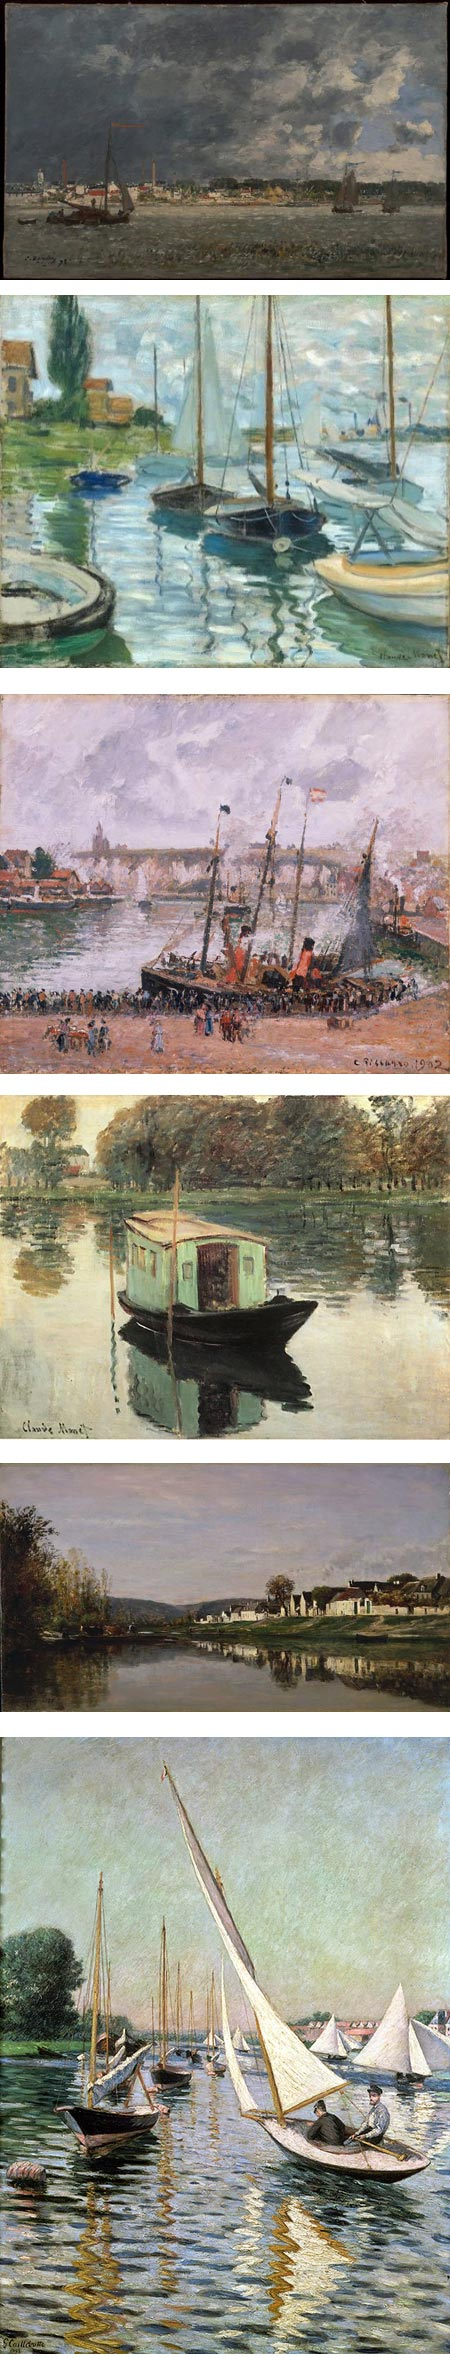 Impressionists on the Water